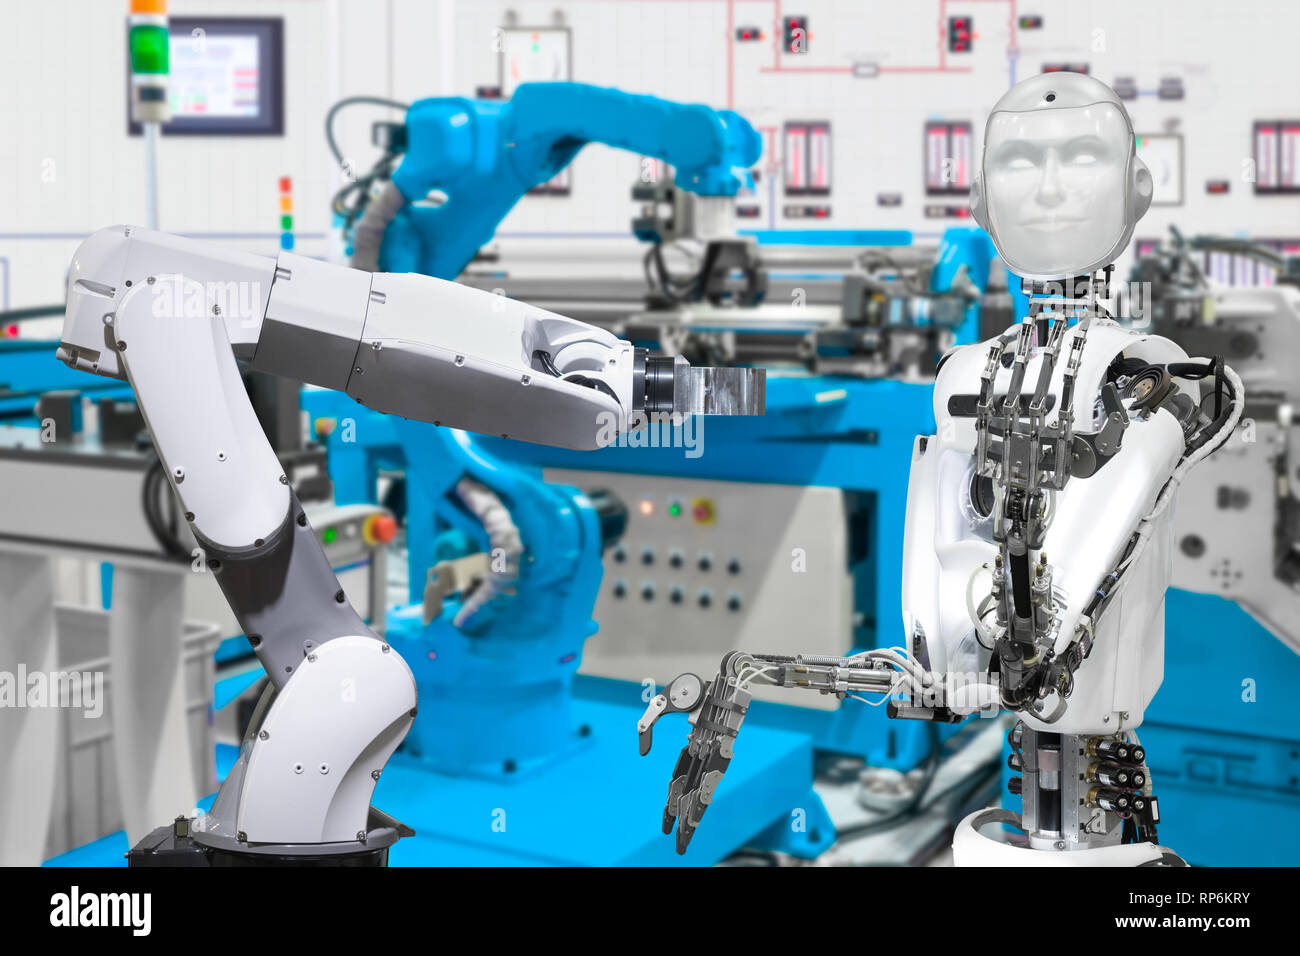 Robot in smart factory, Future technology concept - Stock Image